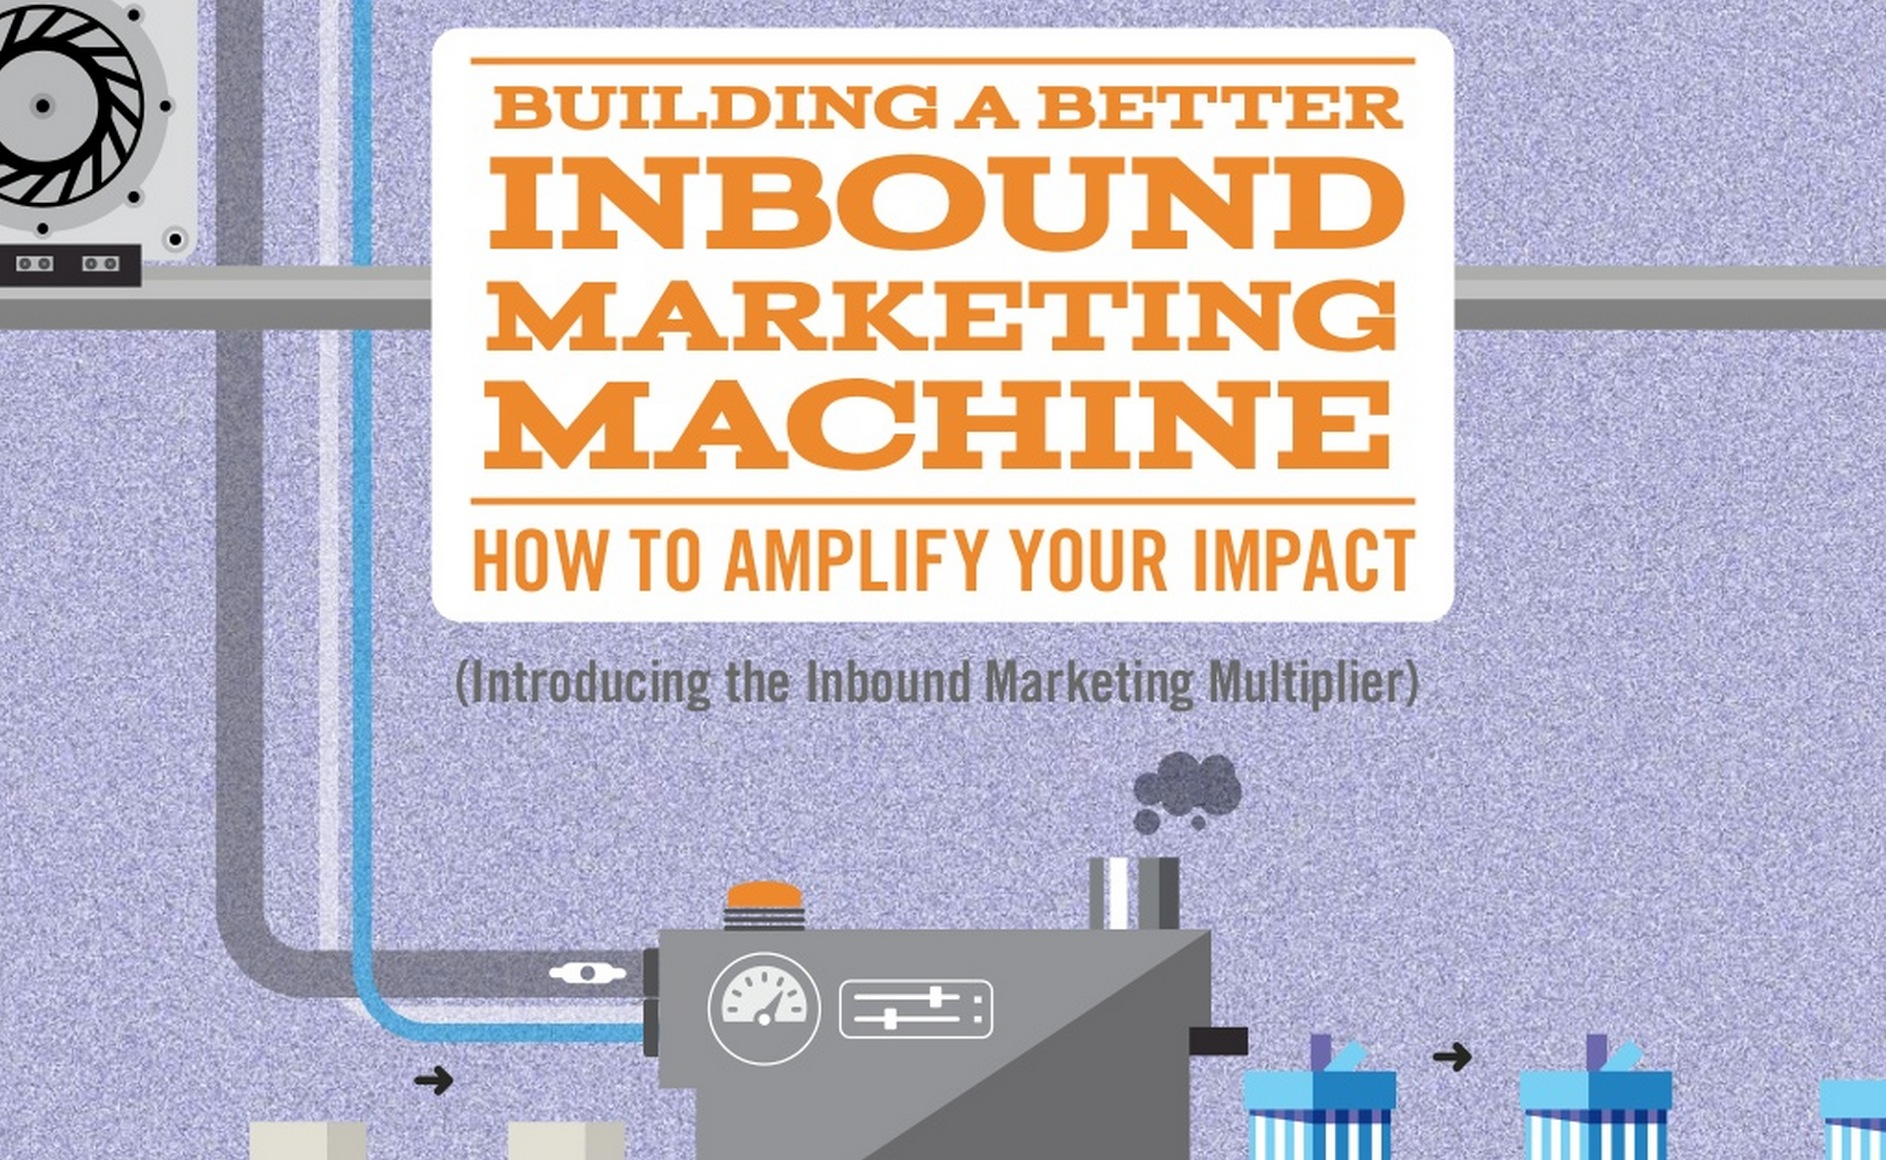 Presentation: How To Build a Better Inbound Marketing Machine: A Blueprint for Success